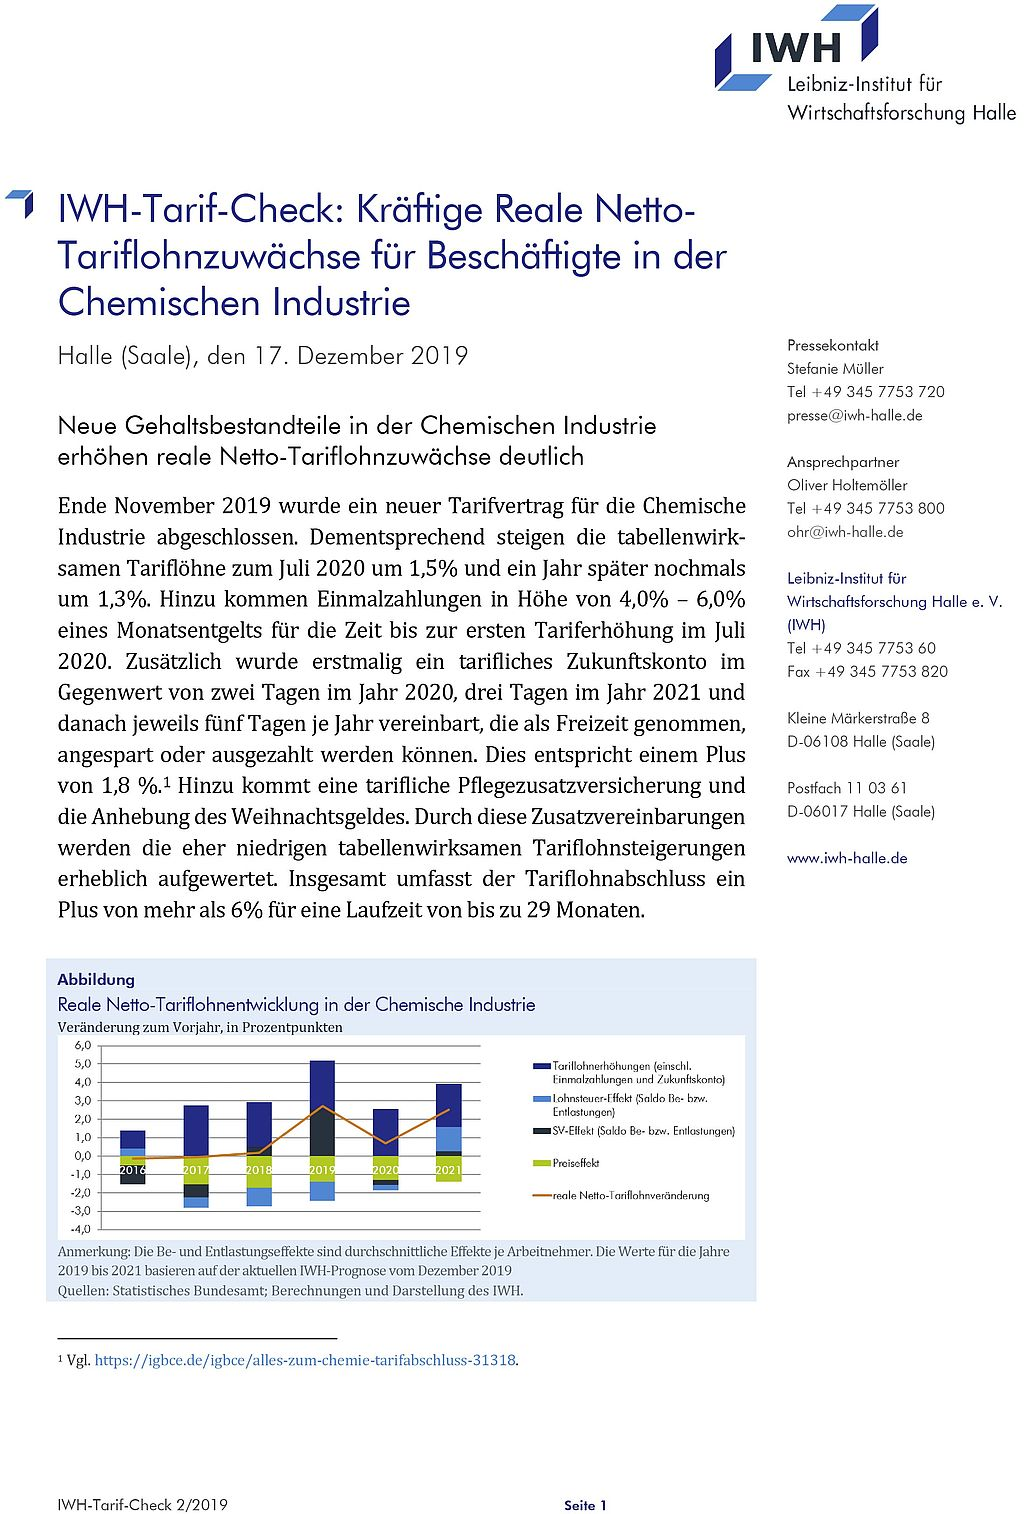 cover_IWH-Tarifcheck-Chemische-Industrie_2019-12-17.jpg